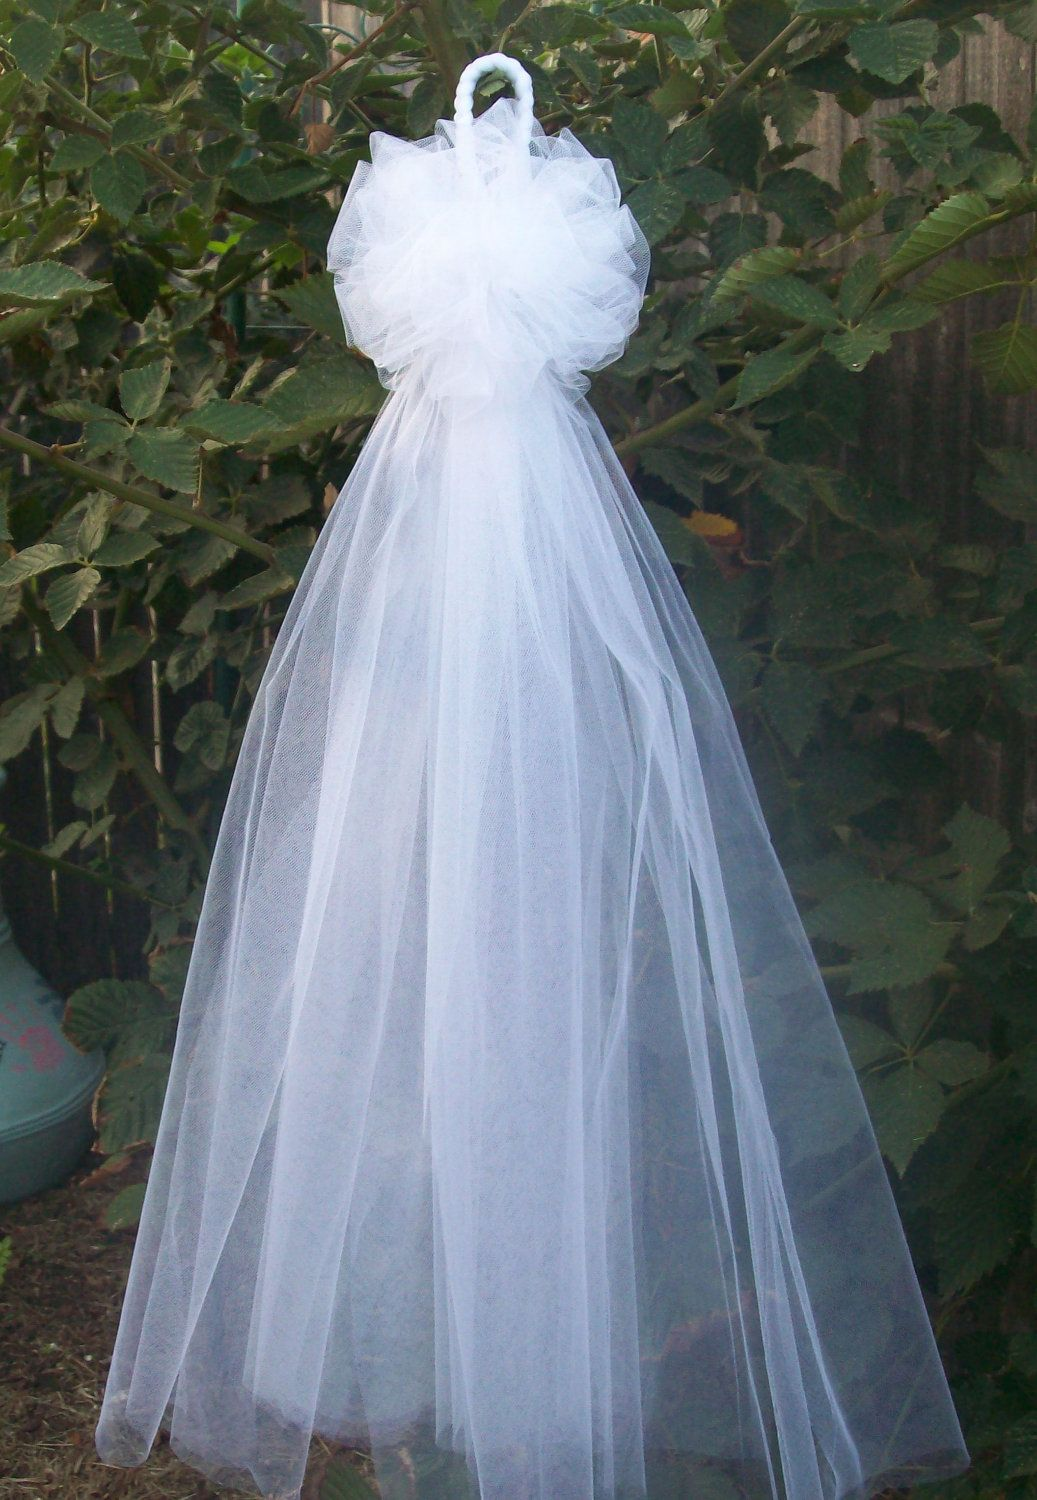 Tulle pew bows quinceanera church pew decor white pew bows ivory tulle pew bows quinceanera church pew decor white pew bows ivory traditional pew bows formal wedding decoration aisle decor junglespirit Image collections